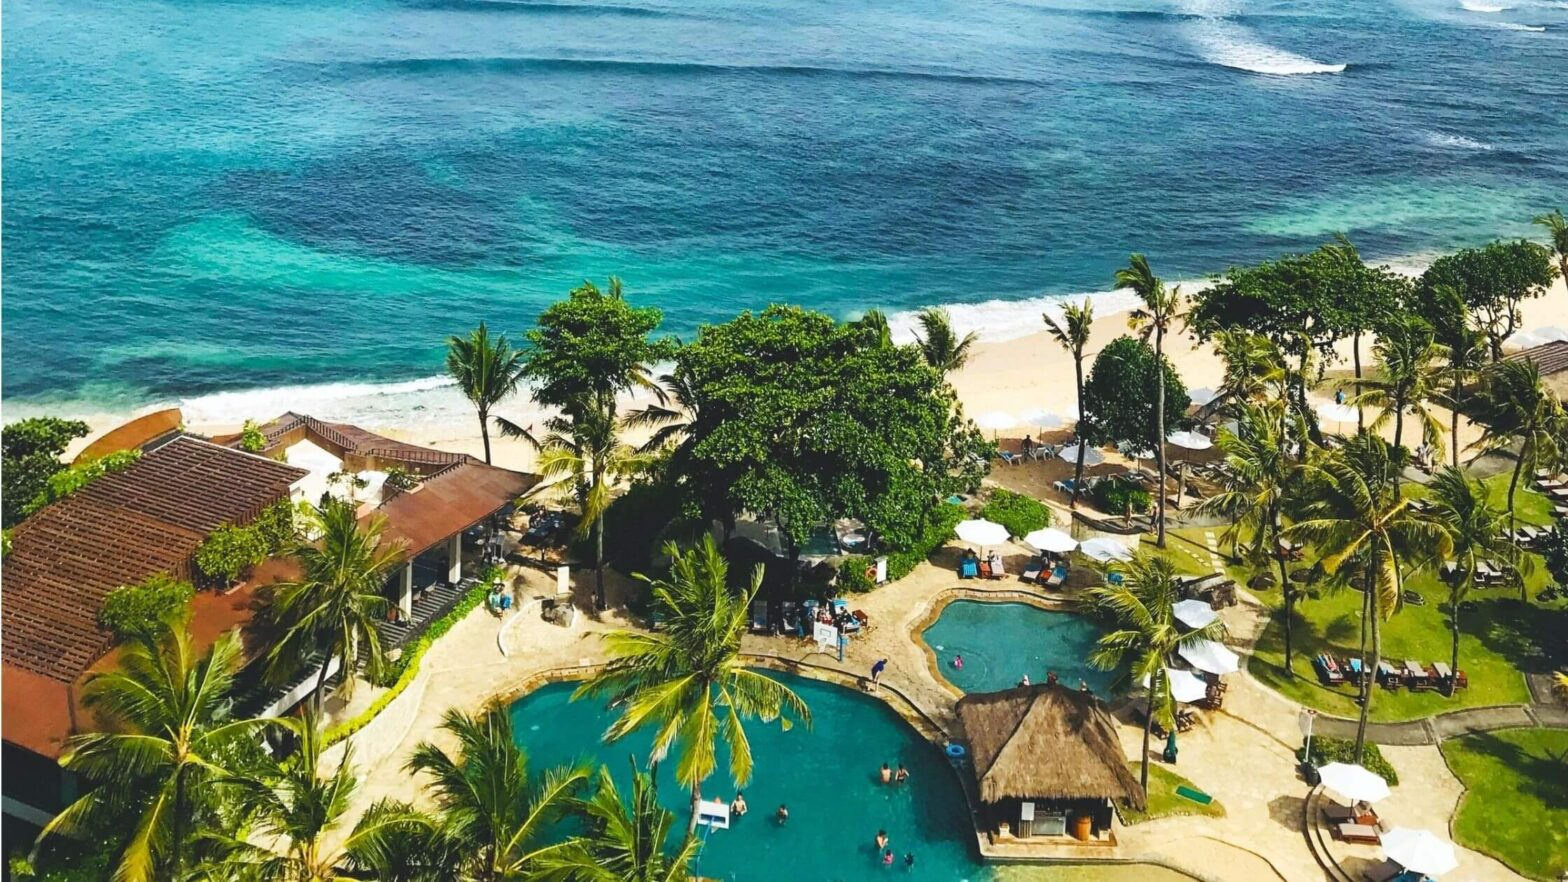 Bali Packages from India - All Inclusive Cost, Deals & Itinerary